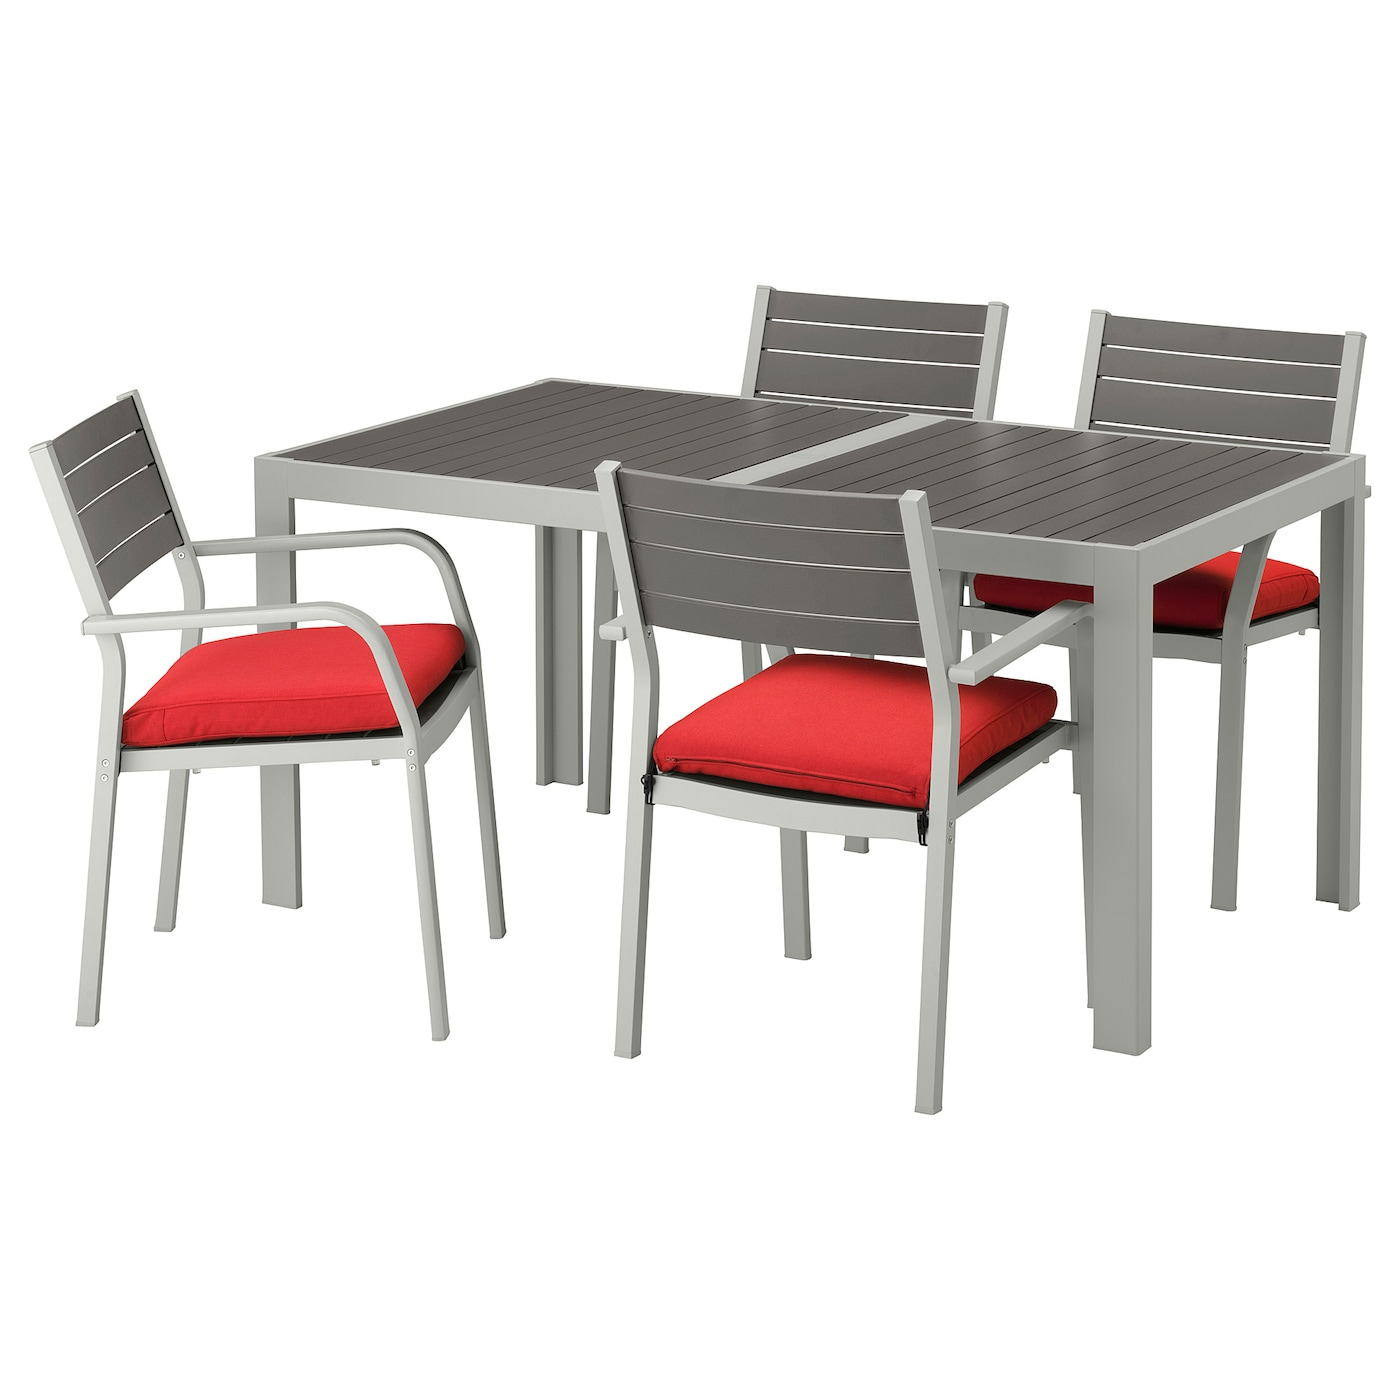 IKEA SJÄLLAND table+4 chairs w armrests, outdoor Easy to keep clean – just wipe with a damp cloth.